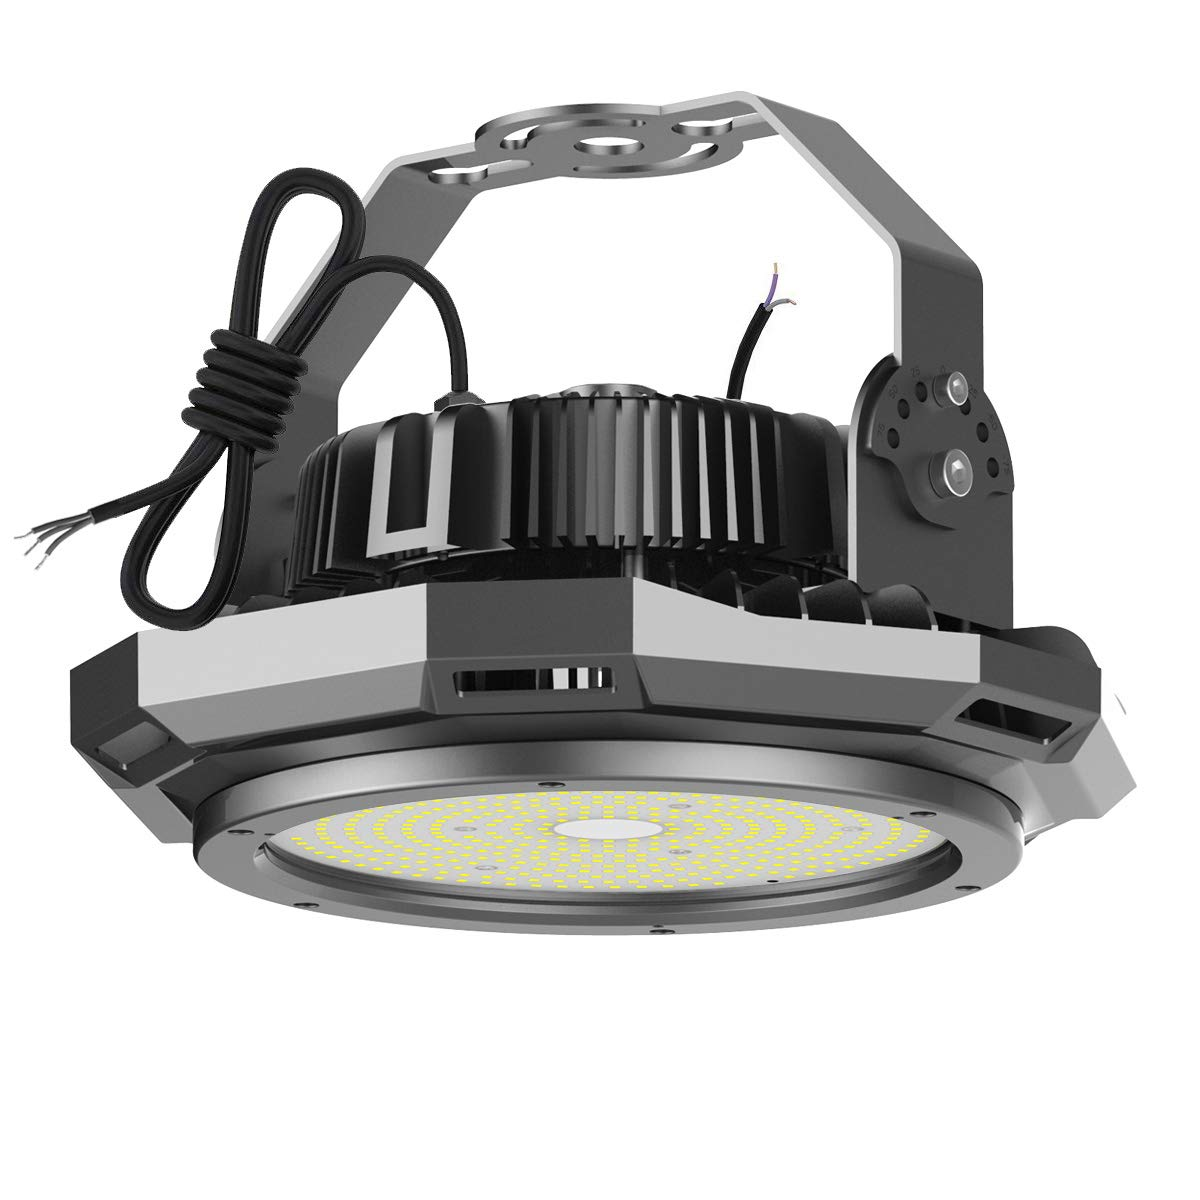 High Bay LED Light Fixture